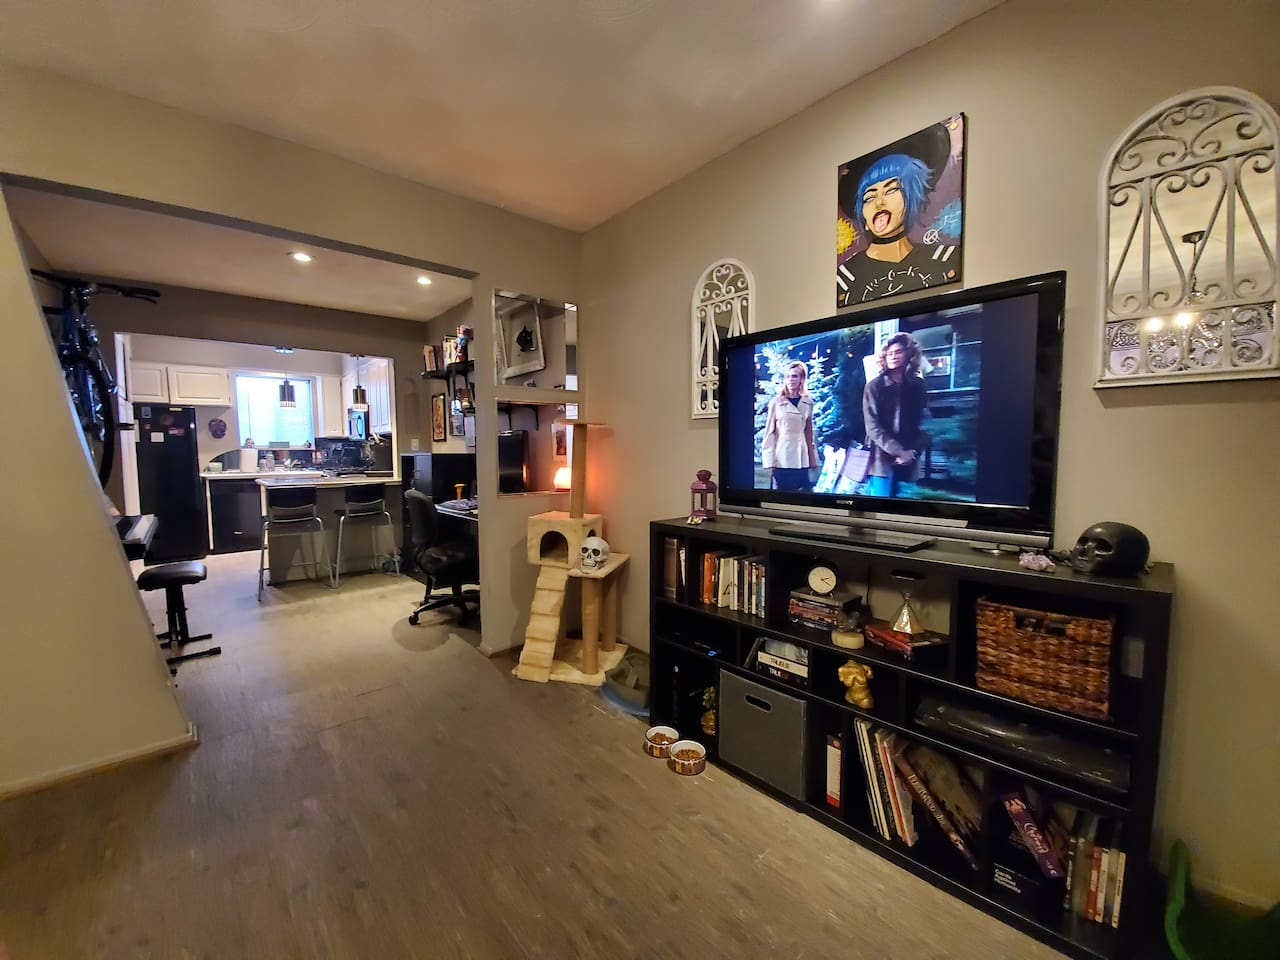 Living room into creative work space.